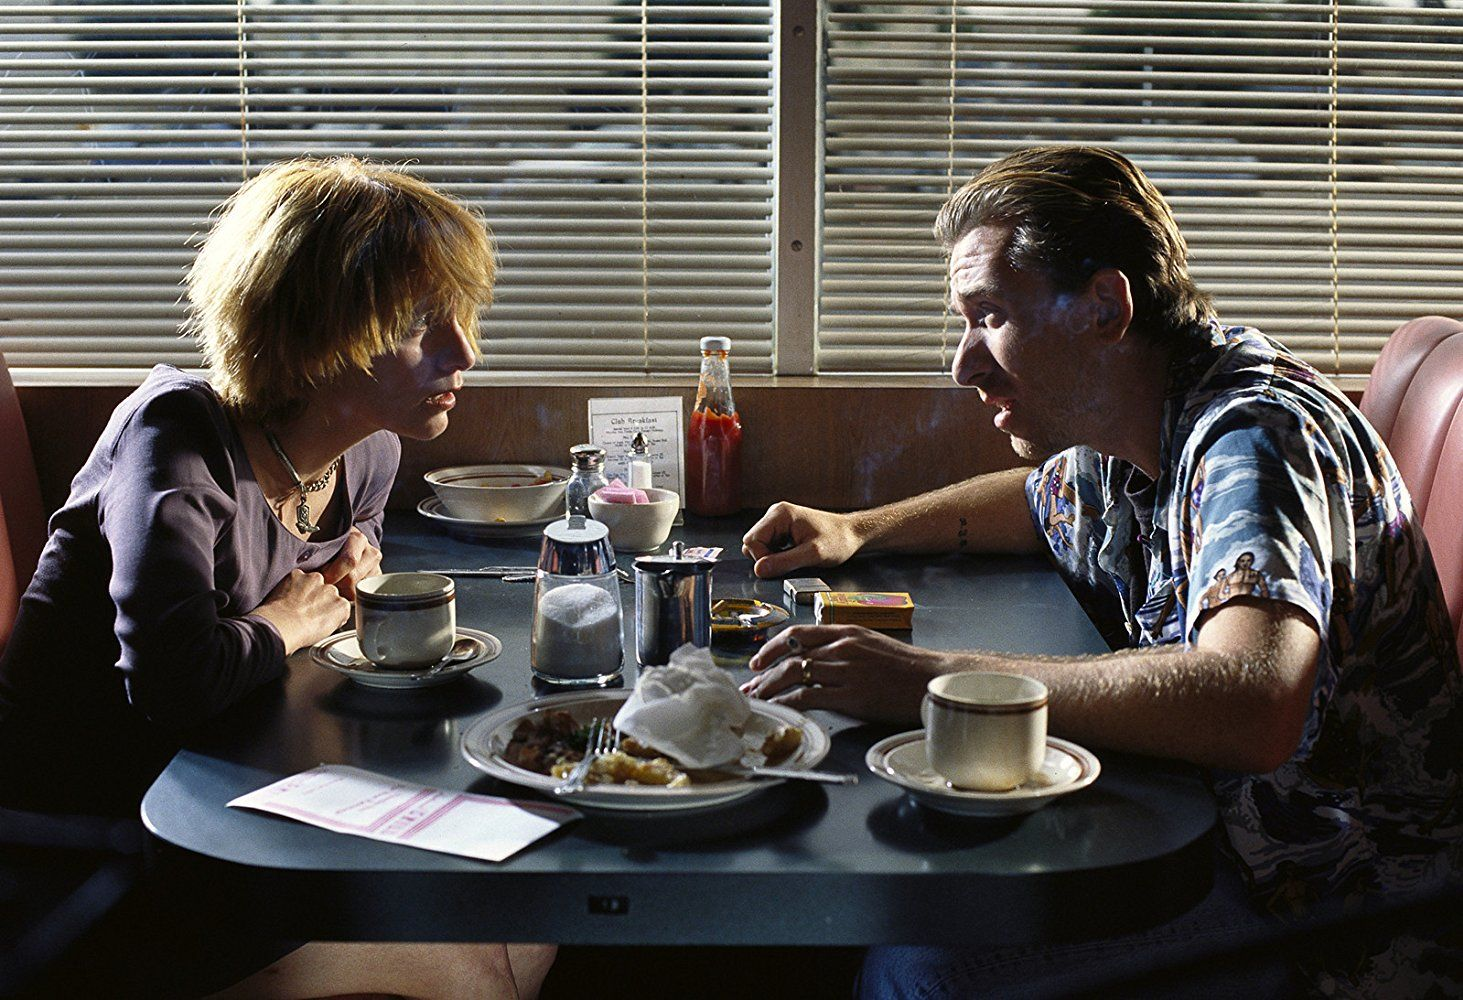 Tim Roth and Amanda Plummer in Pulp Fiction (1994) | Pulp fiction ...